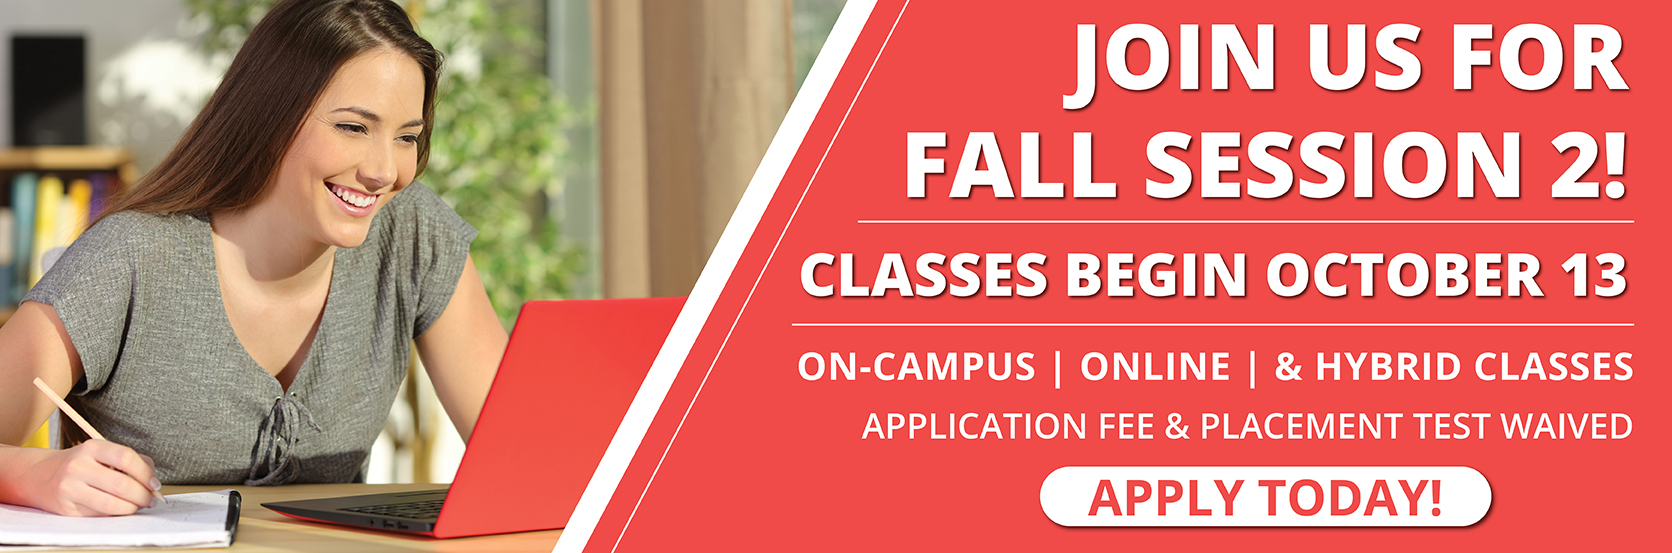 Join us for Fall Session 2. Classes begin October 13. On-campus, online, and hybrid classes available. Apply online today at www.centralgatech.edu/admissions-financial-aid.